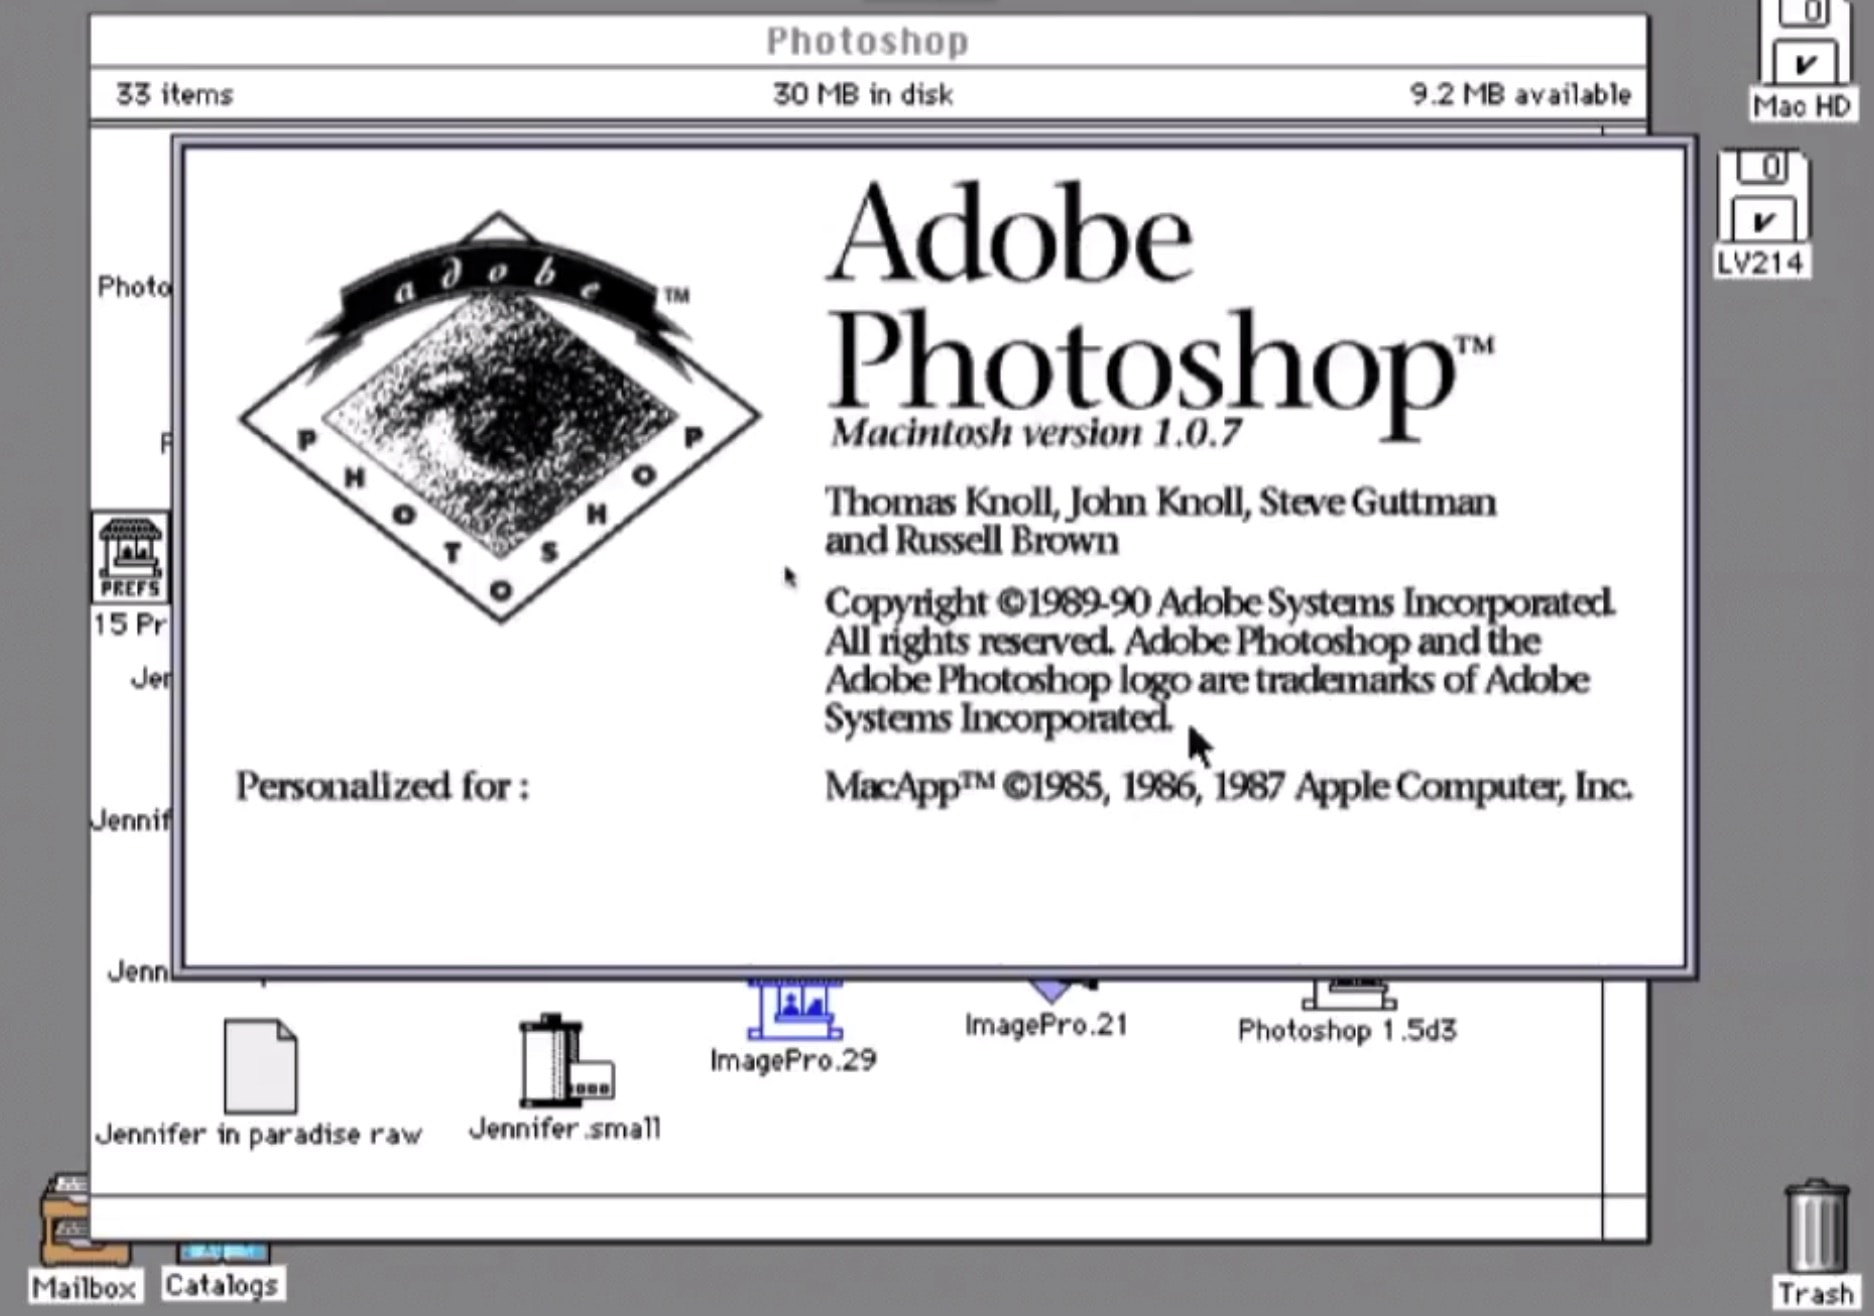 Adobe Systems' Photoshop launch changed the game for image editing.